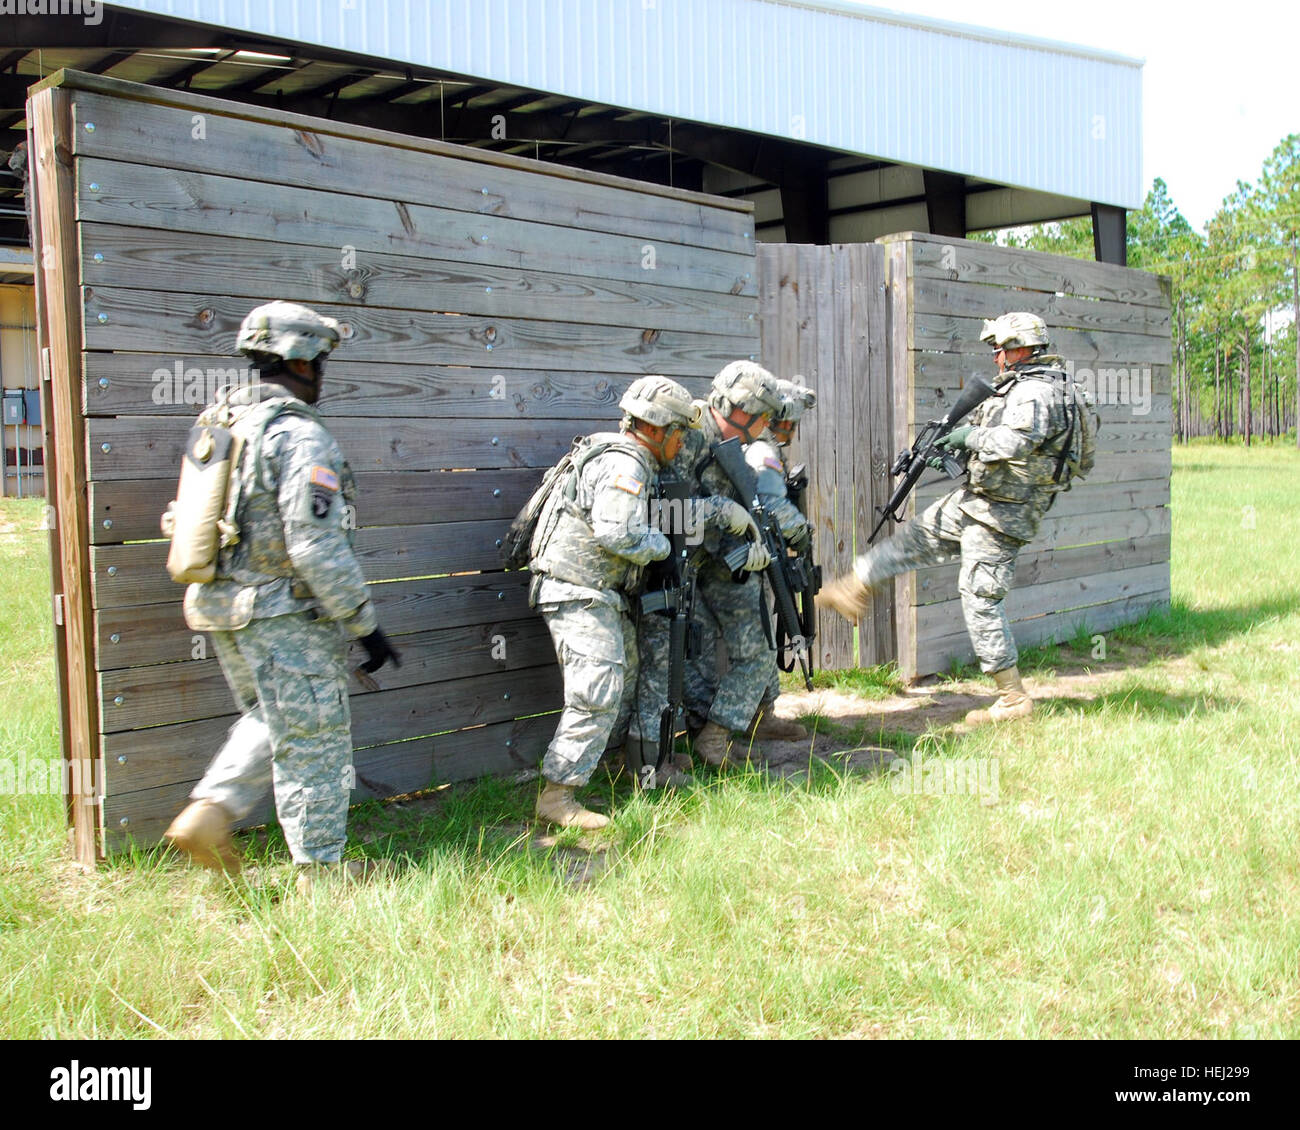 Soldiers from E Co., 4-3 Avn., begin their urban terrain (mout) live-fire exercie Aug. 26, by kicking a door at - Stock Image